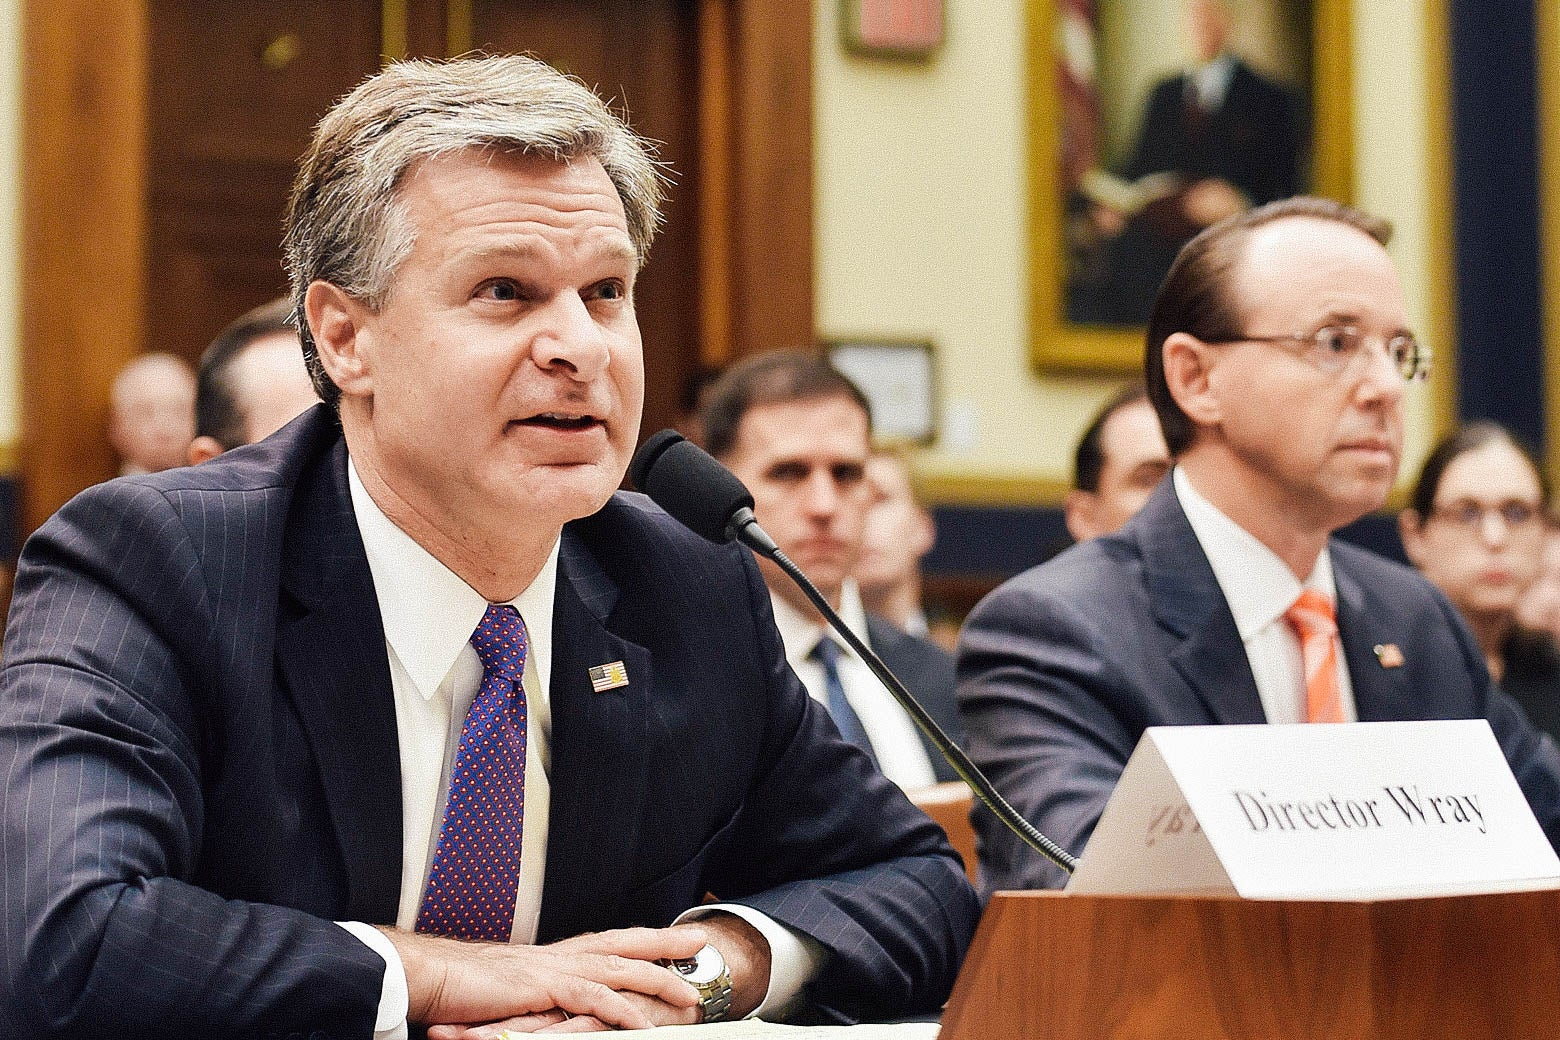 Christopher Wray and Rod Rosenstein at a House hearing.